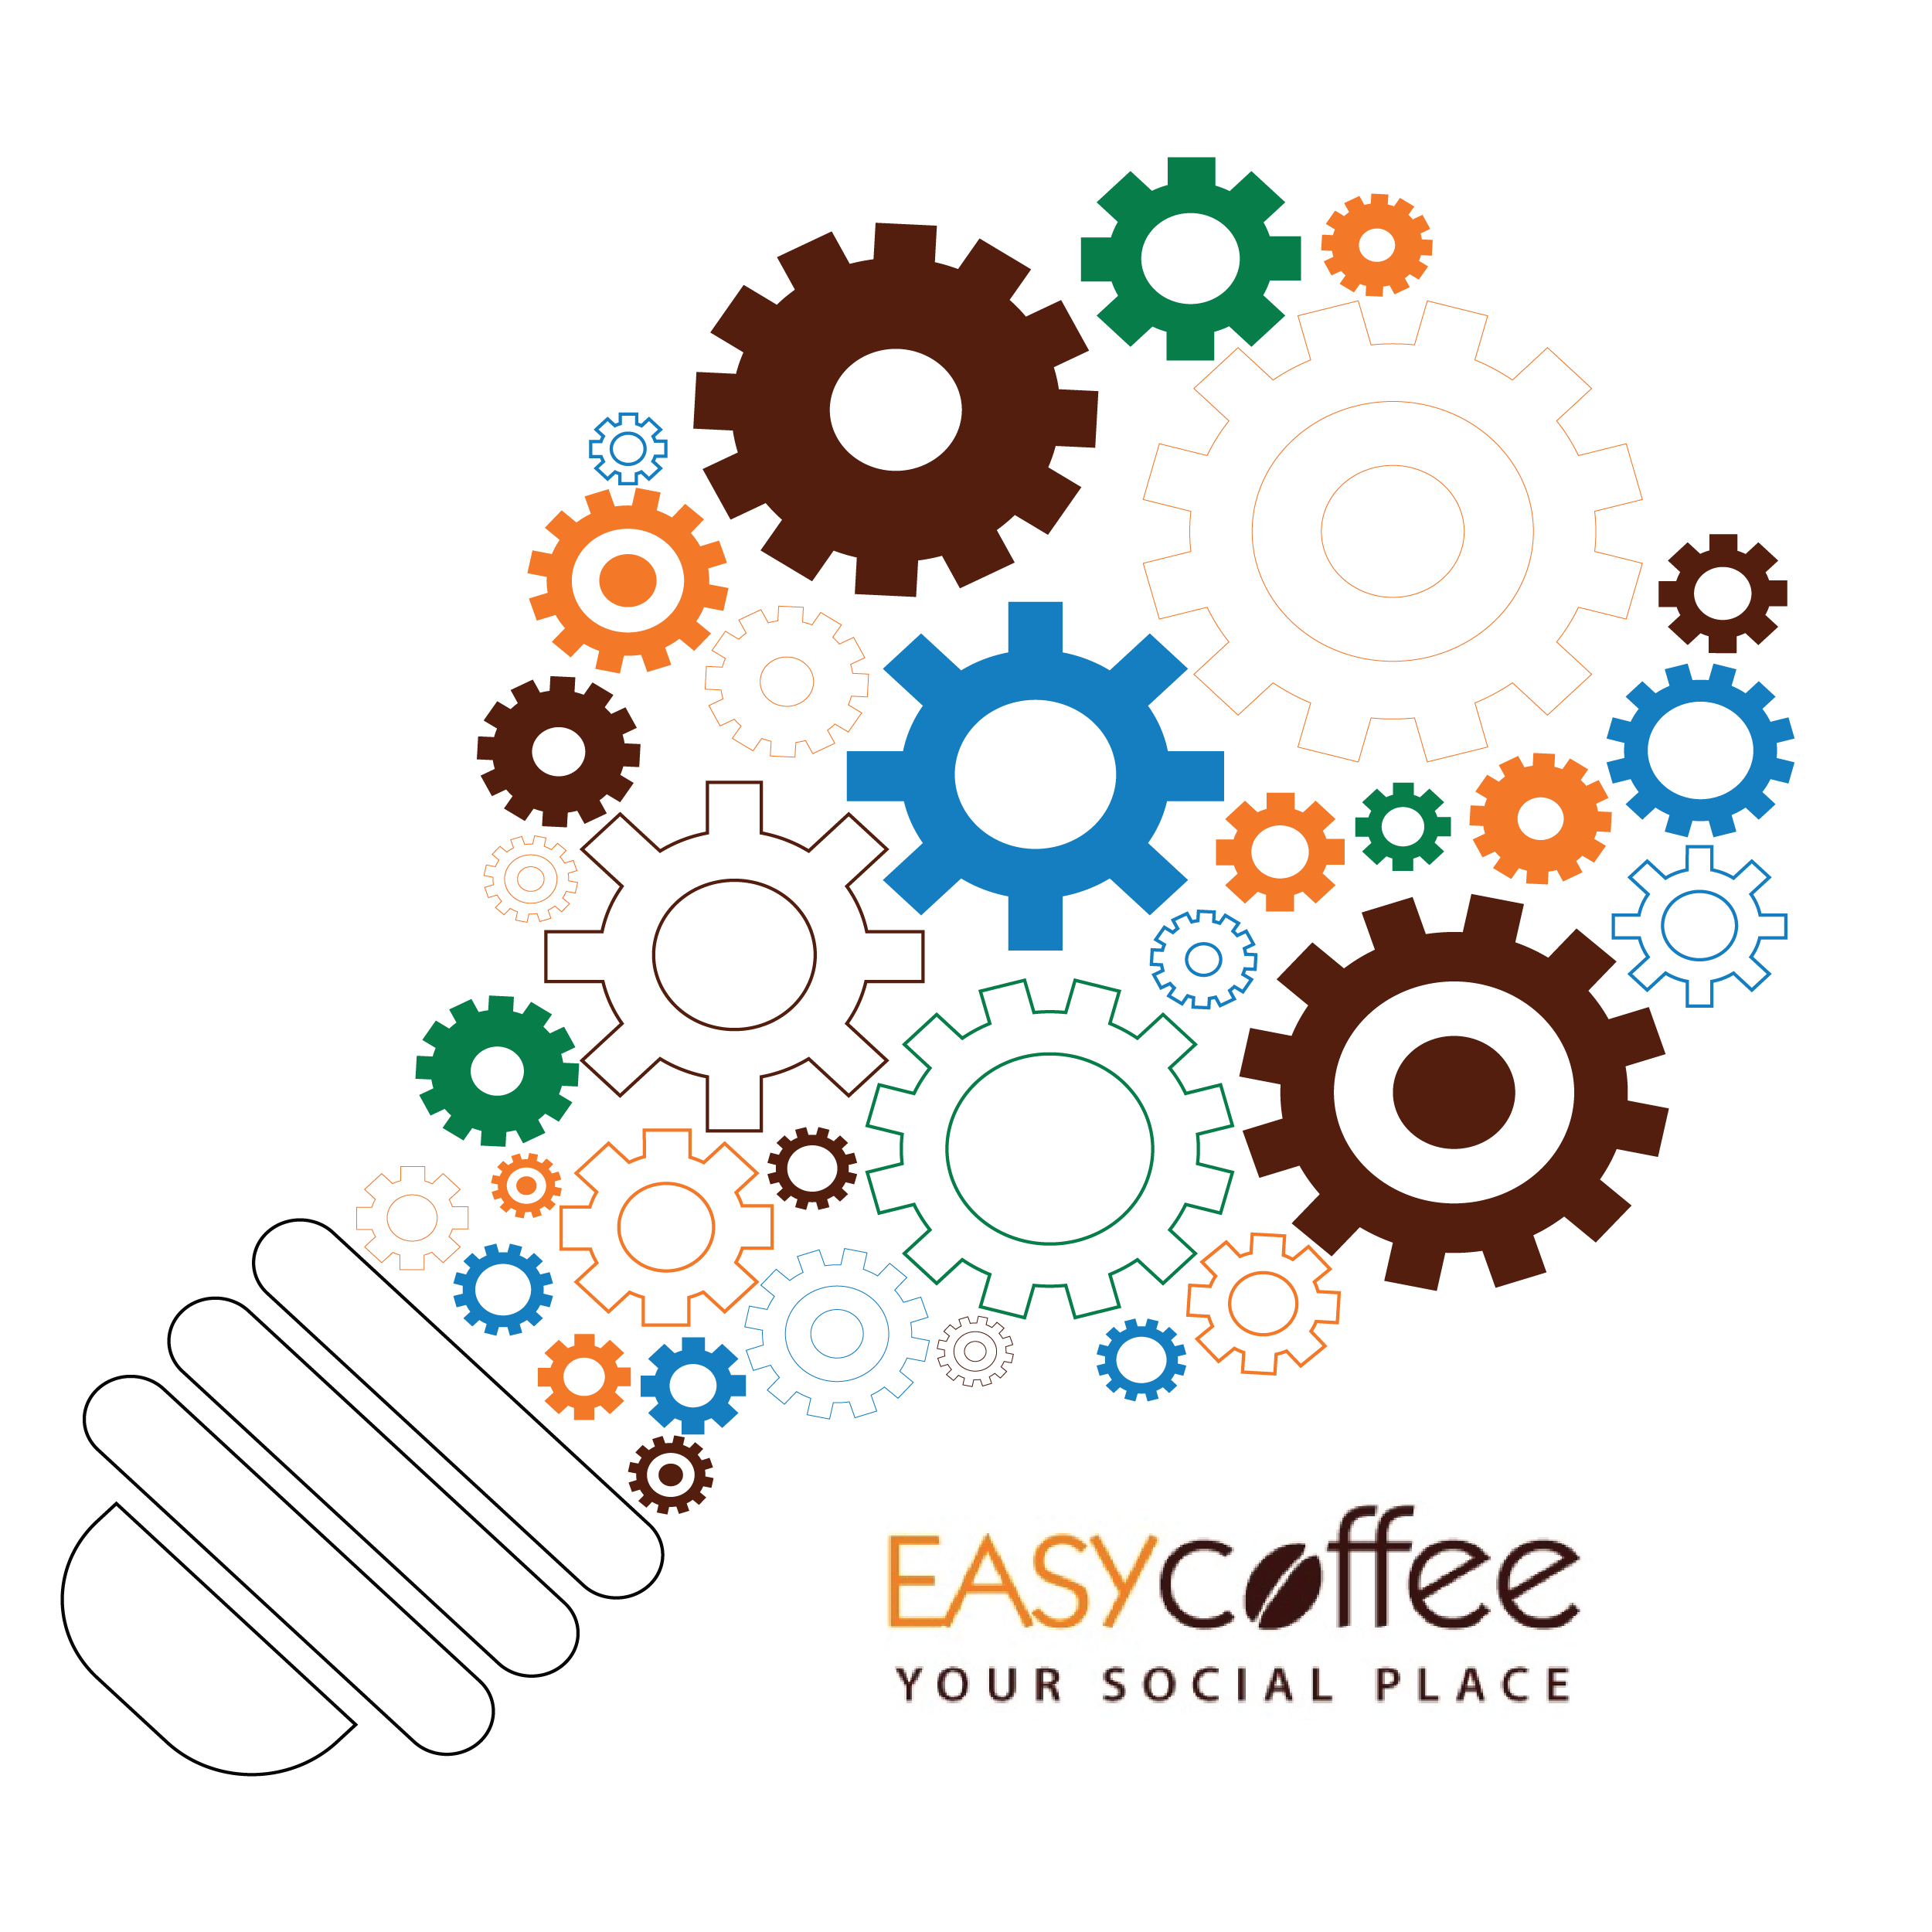 easycoffee-your social place